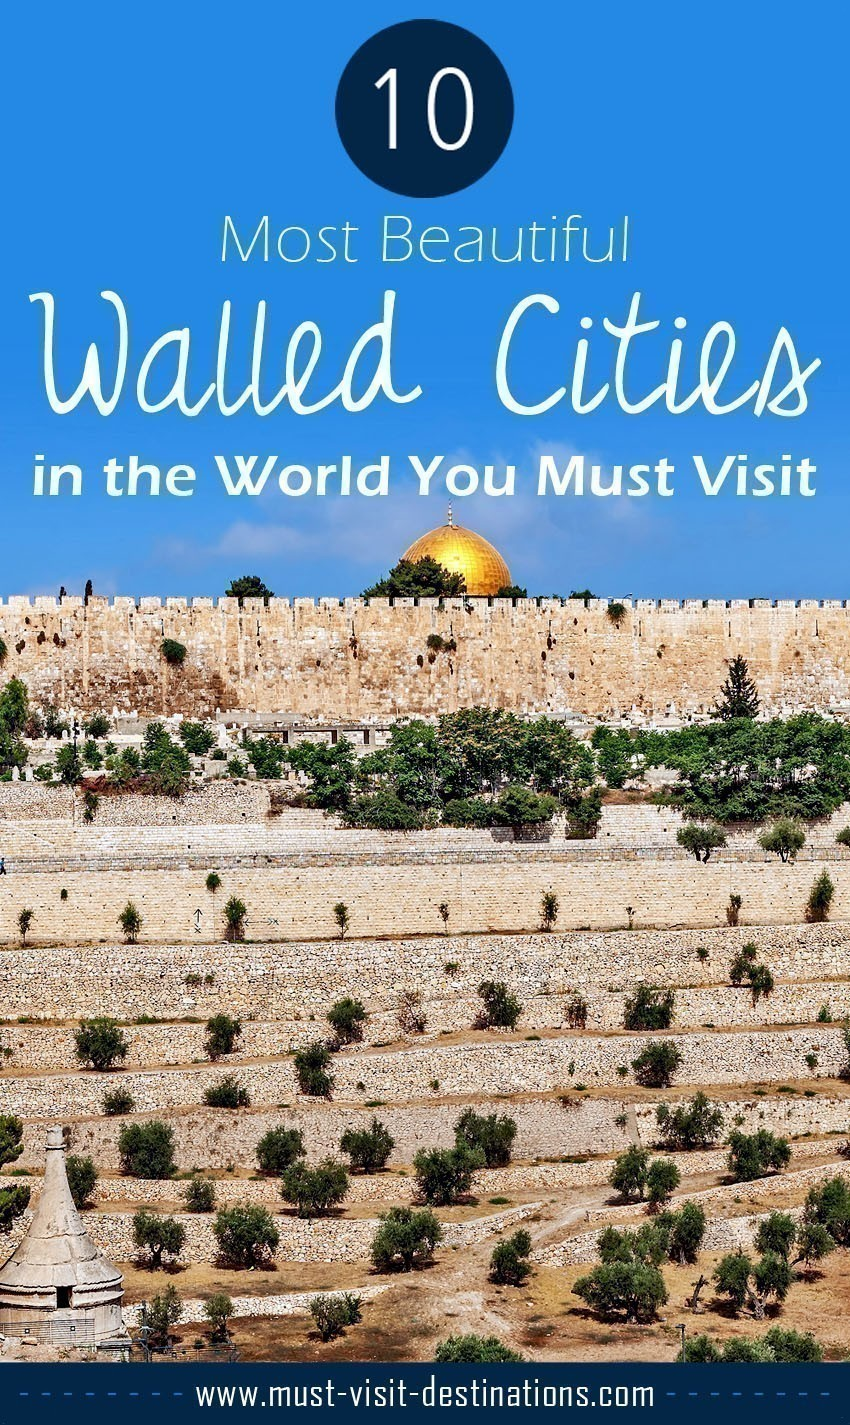 TOP 10 Most Beautiful Walled Cities in the World You Must Visit #travel